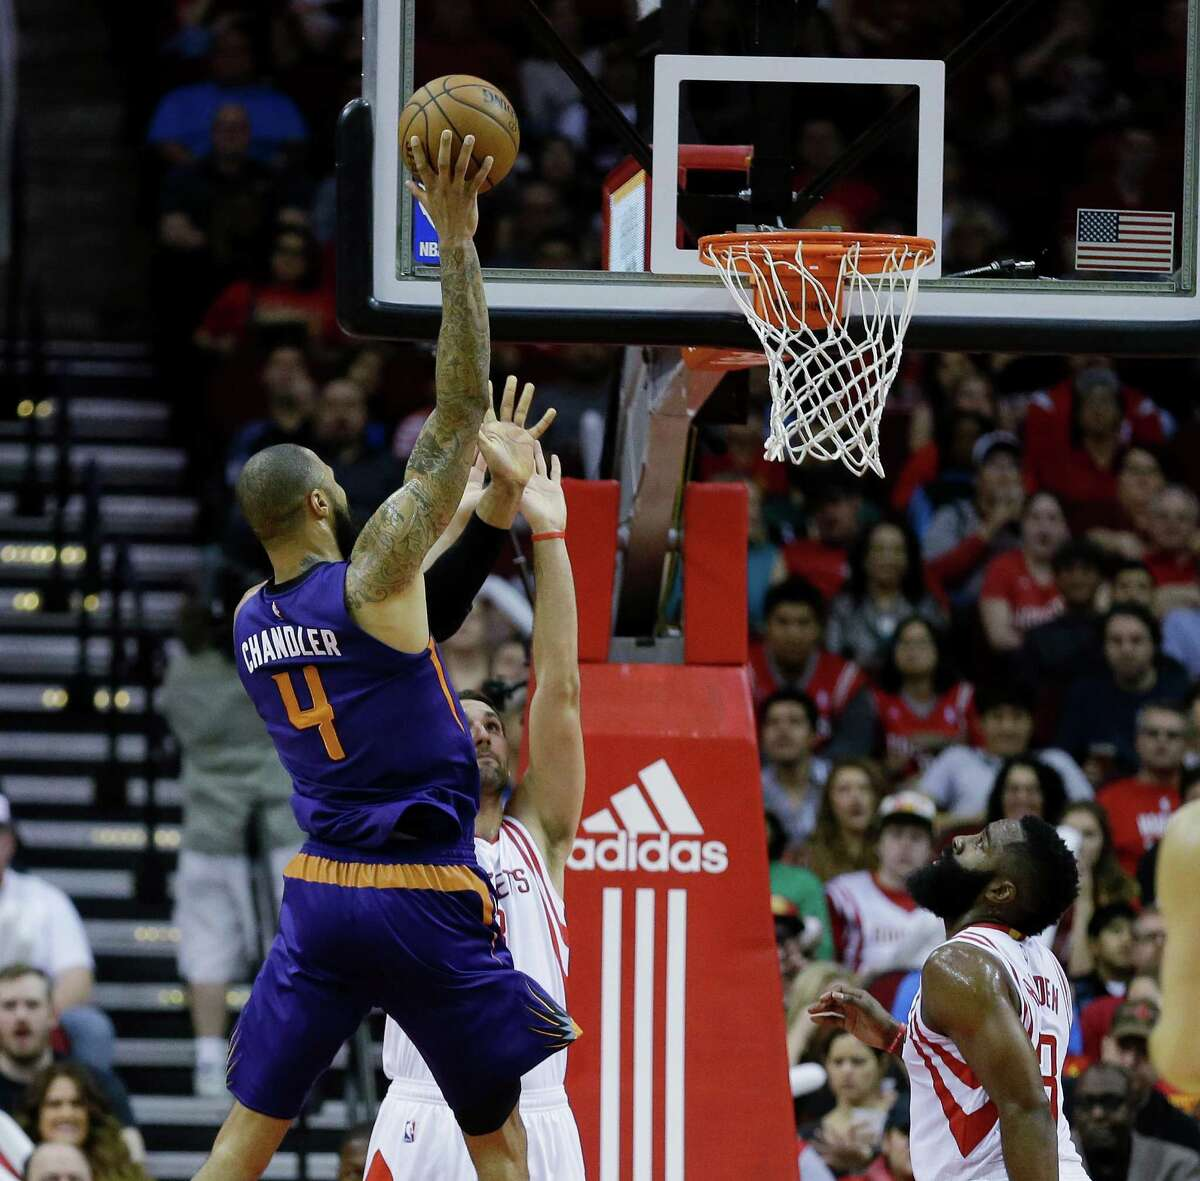 Phoenix Suns center Tyson Chandler (4) shoots over Houston Rockets forward Ryan Anderson (3) as guard James Harden (13) looks on in the first half of an NBA basketball game on Monday, Dec. 26, 2016 in Houston. (AP Photo/Bob Levey)